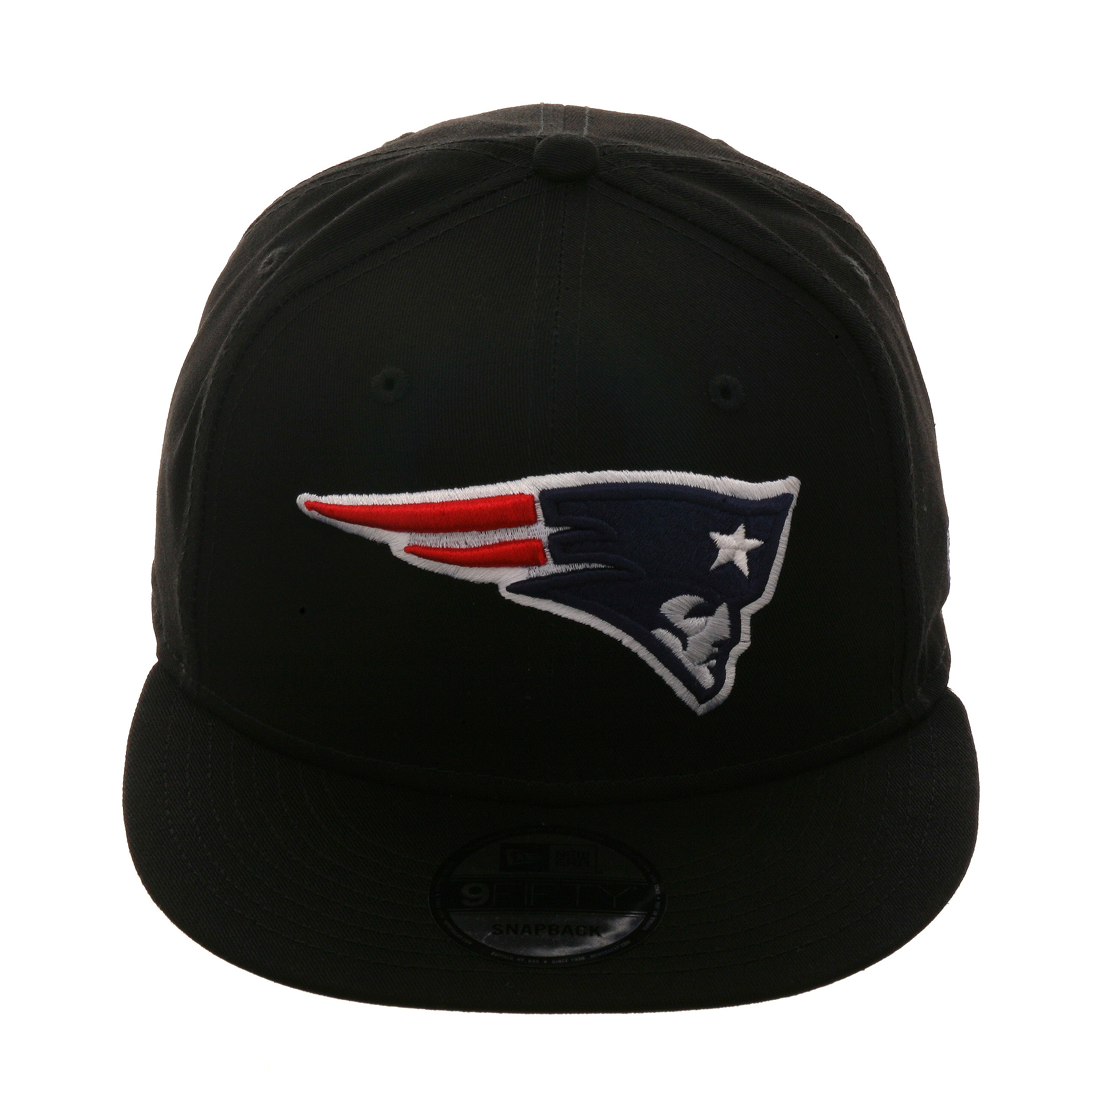 ef6fdb2e8d2 New Era 9fifty New England Patriots Snapback Hat - Black